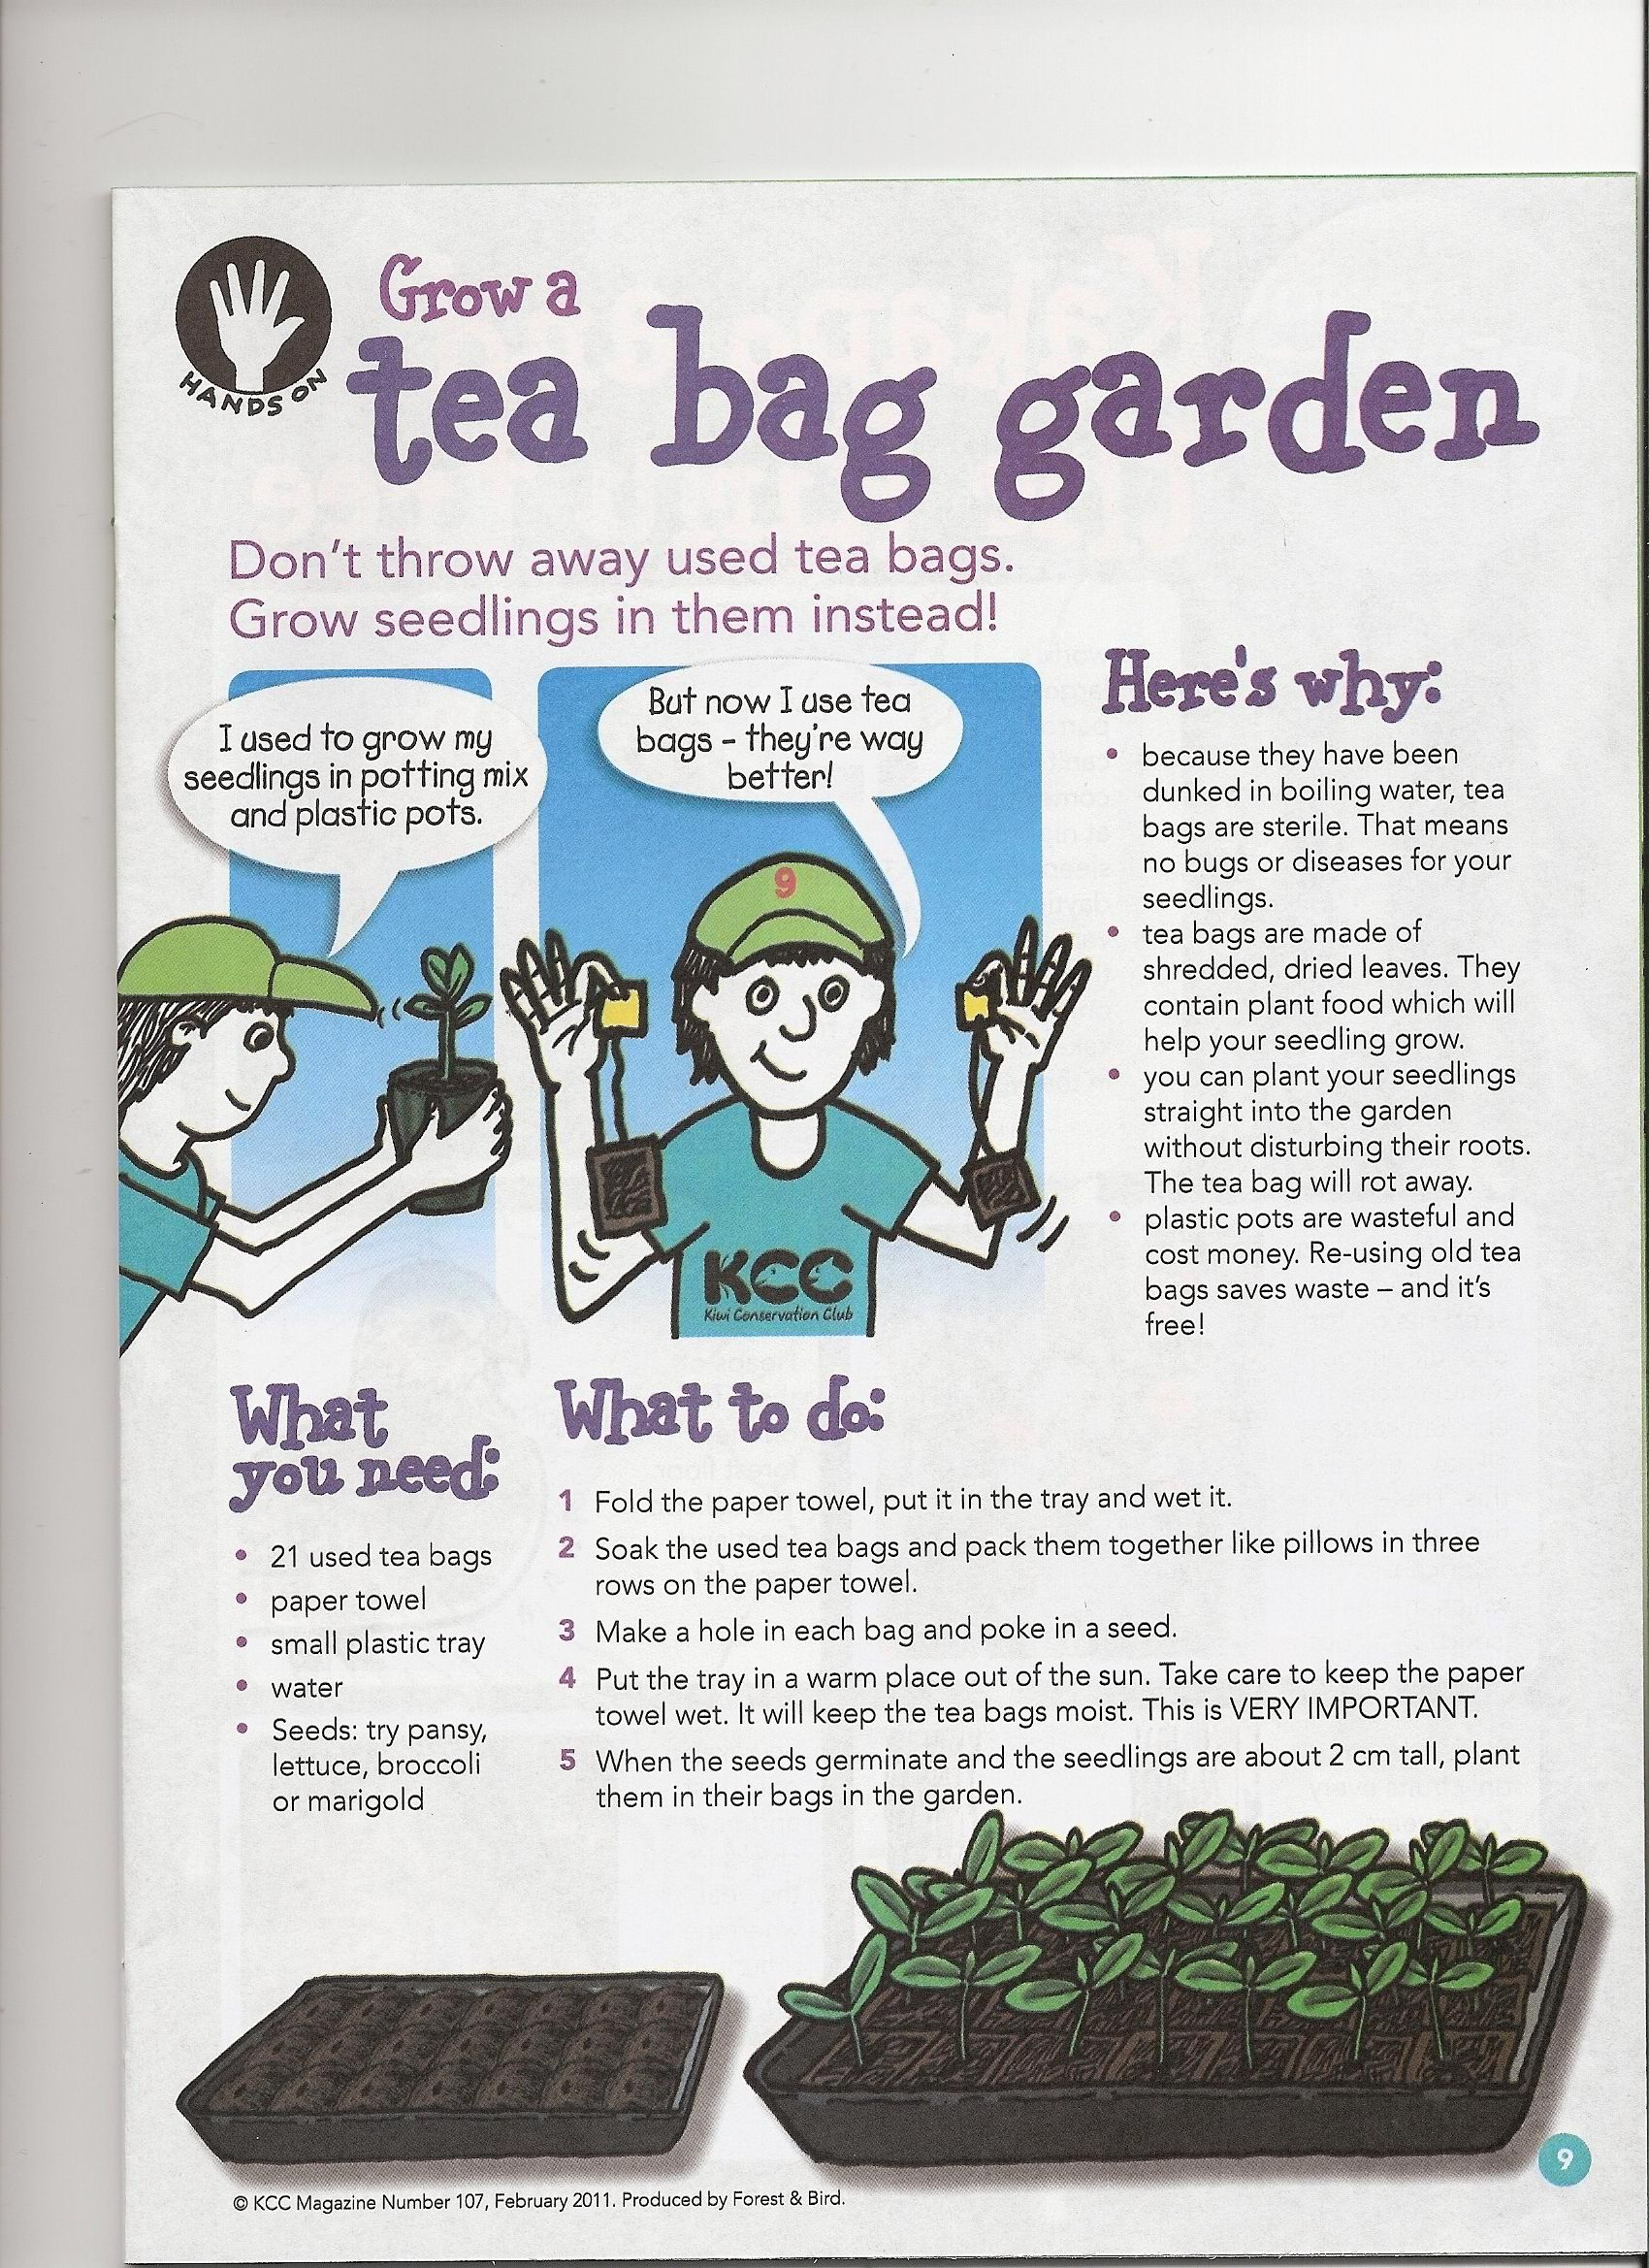 How To Make Growing Seeds In Tea Bags How To Grow Seeds In A Tea Bag Growing Seeds Used Tea Bags Garden